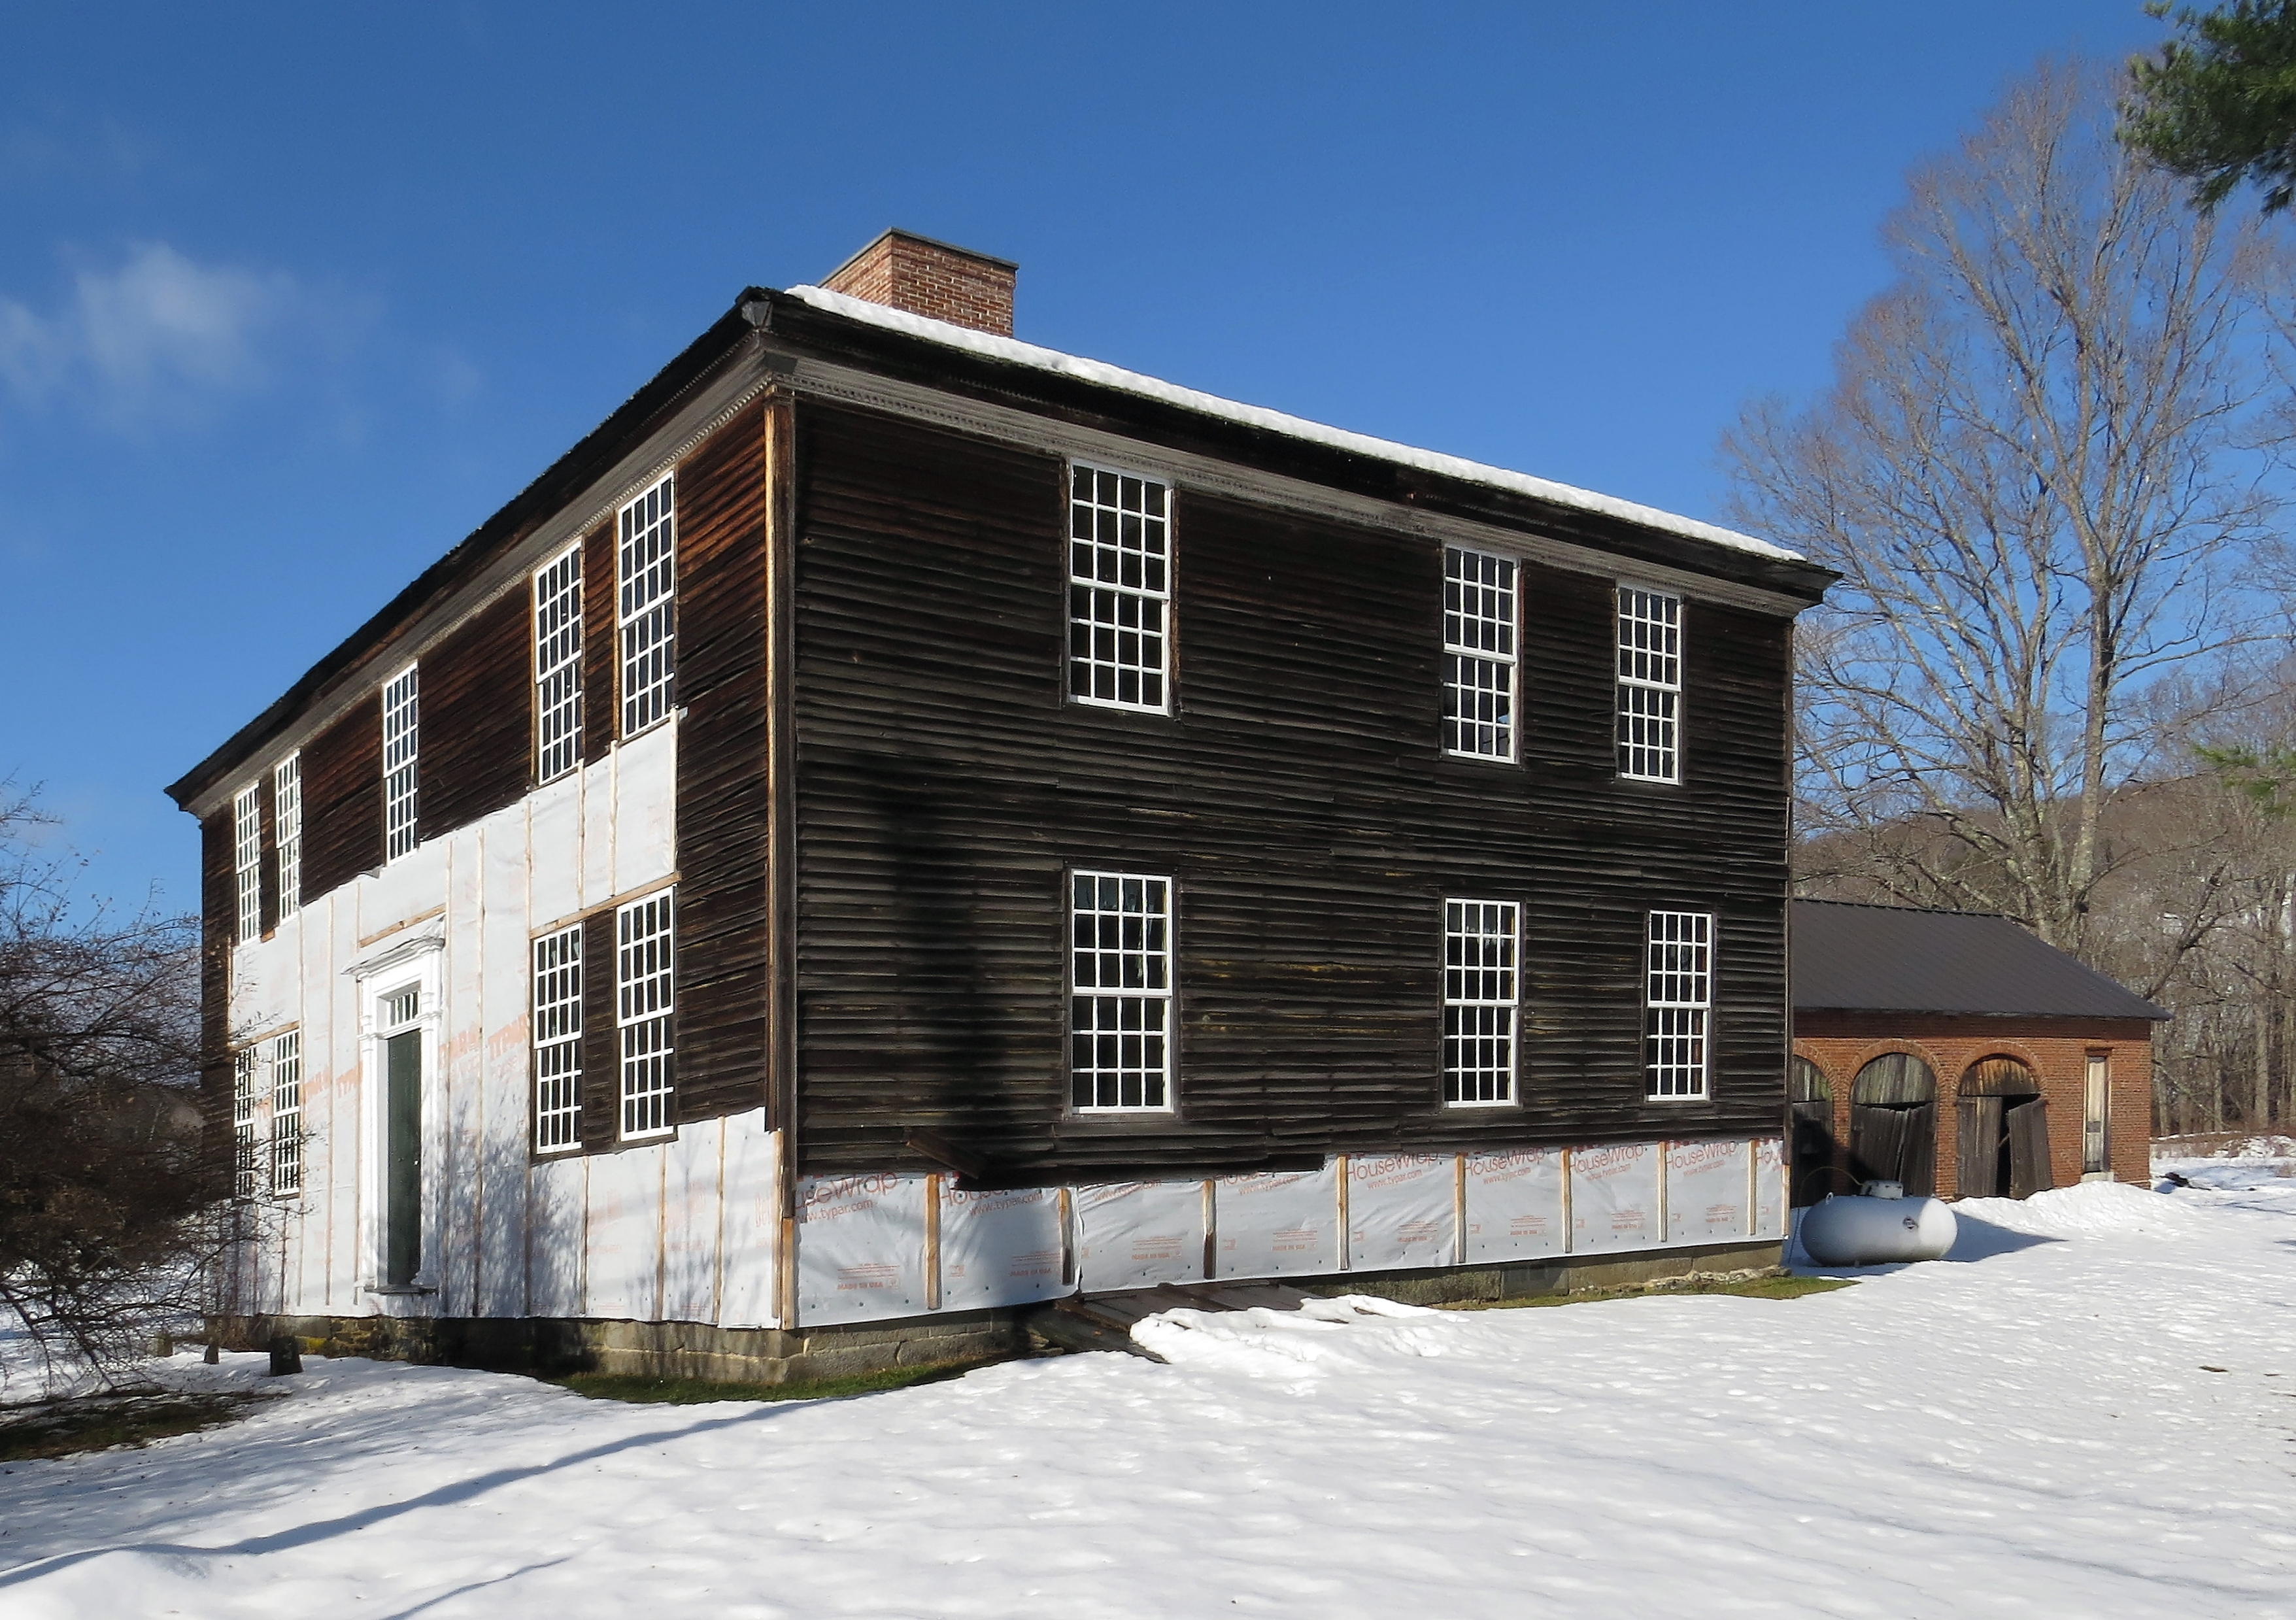 Theron Boyd House (1786)